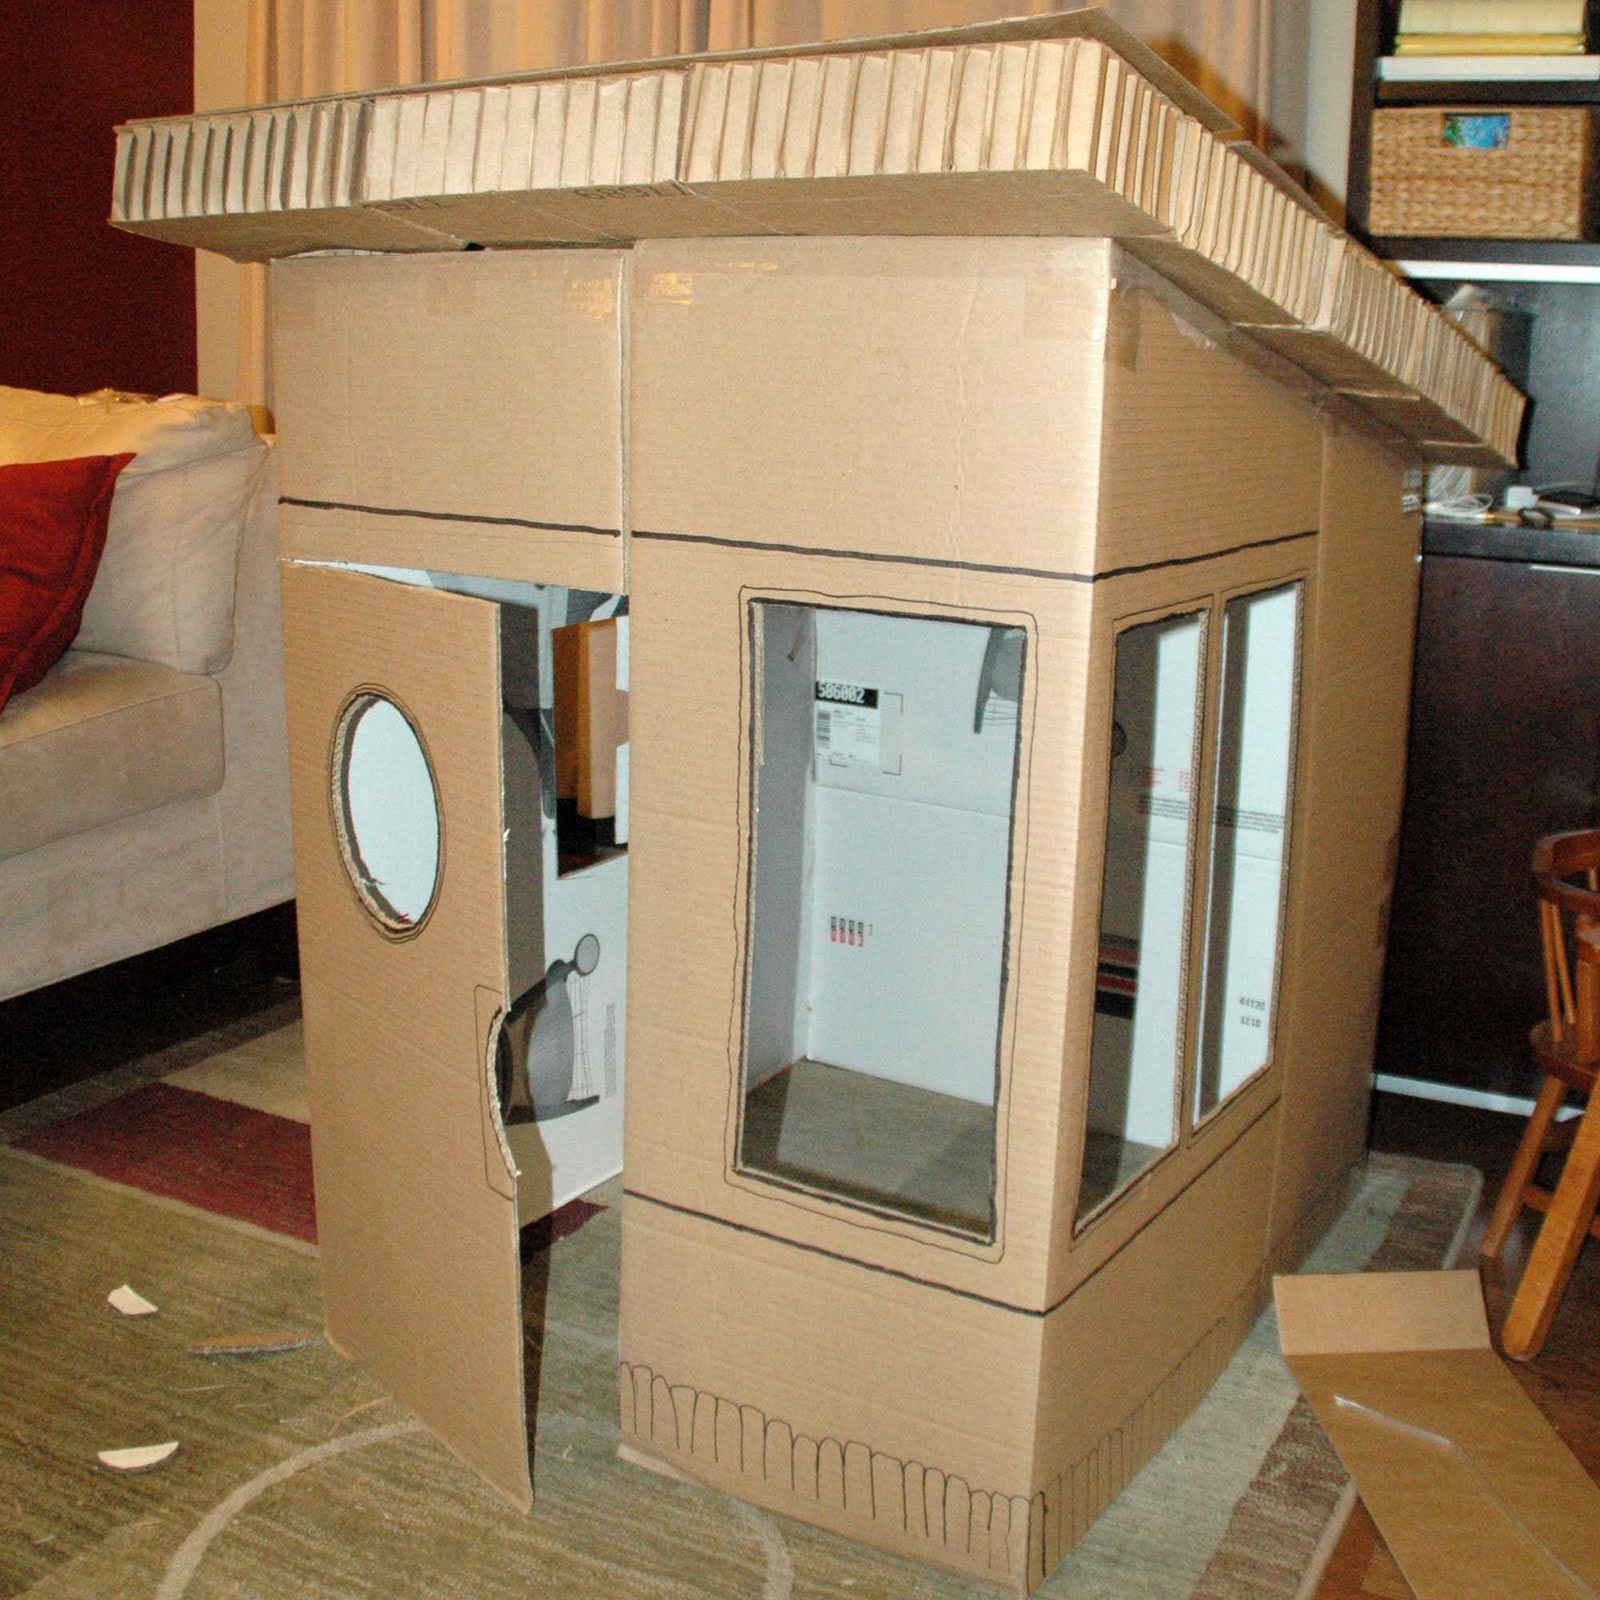 Mom's Daily Adventures!: DIY Cardboard Playhouse